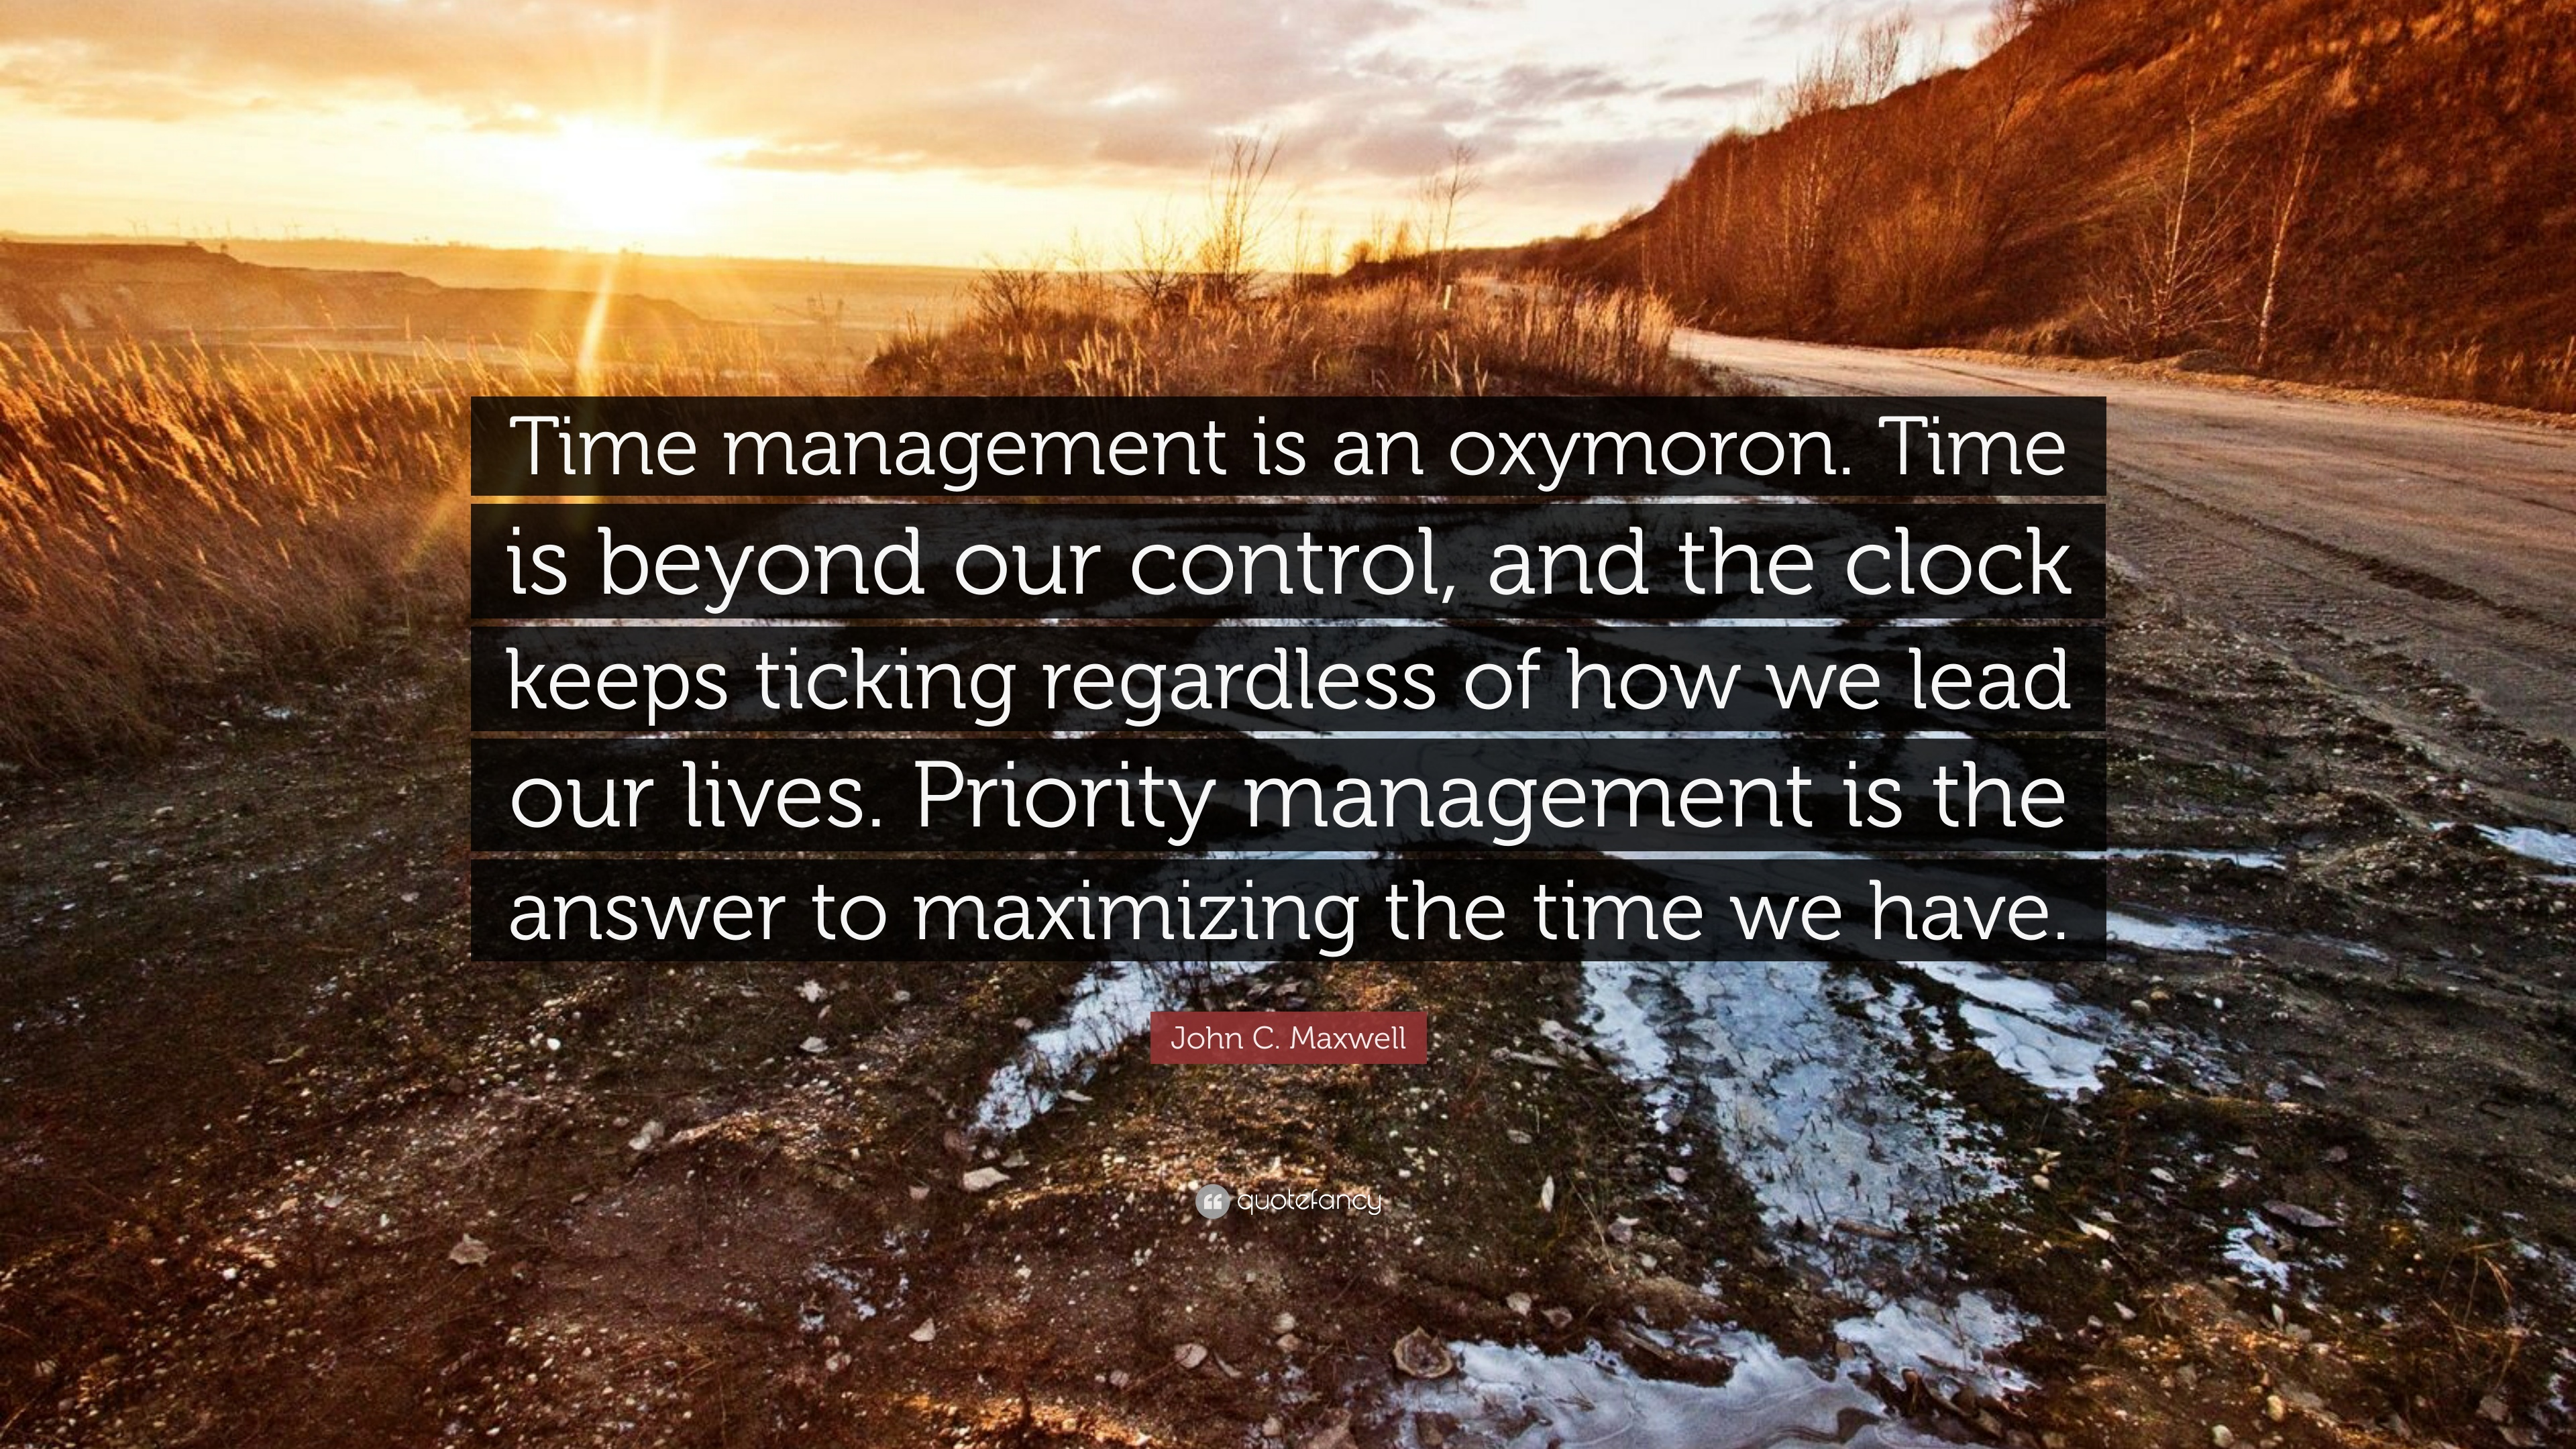 John C Maxwell Quote Time Management Is An Oxymoron Time Is Beyond Our Control And The Clock Keeps Ticking Regardless Of How We Lead Our Li 12 Wallpapers Quotefancy